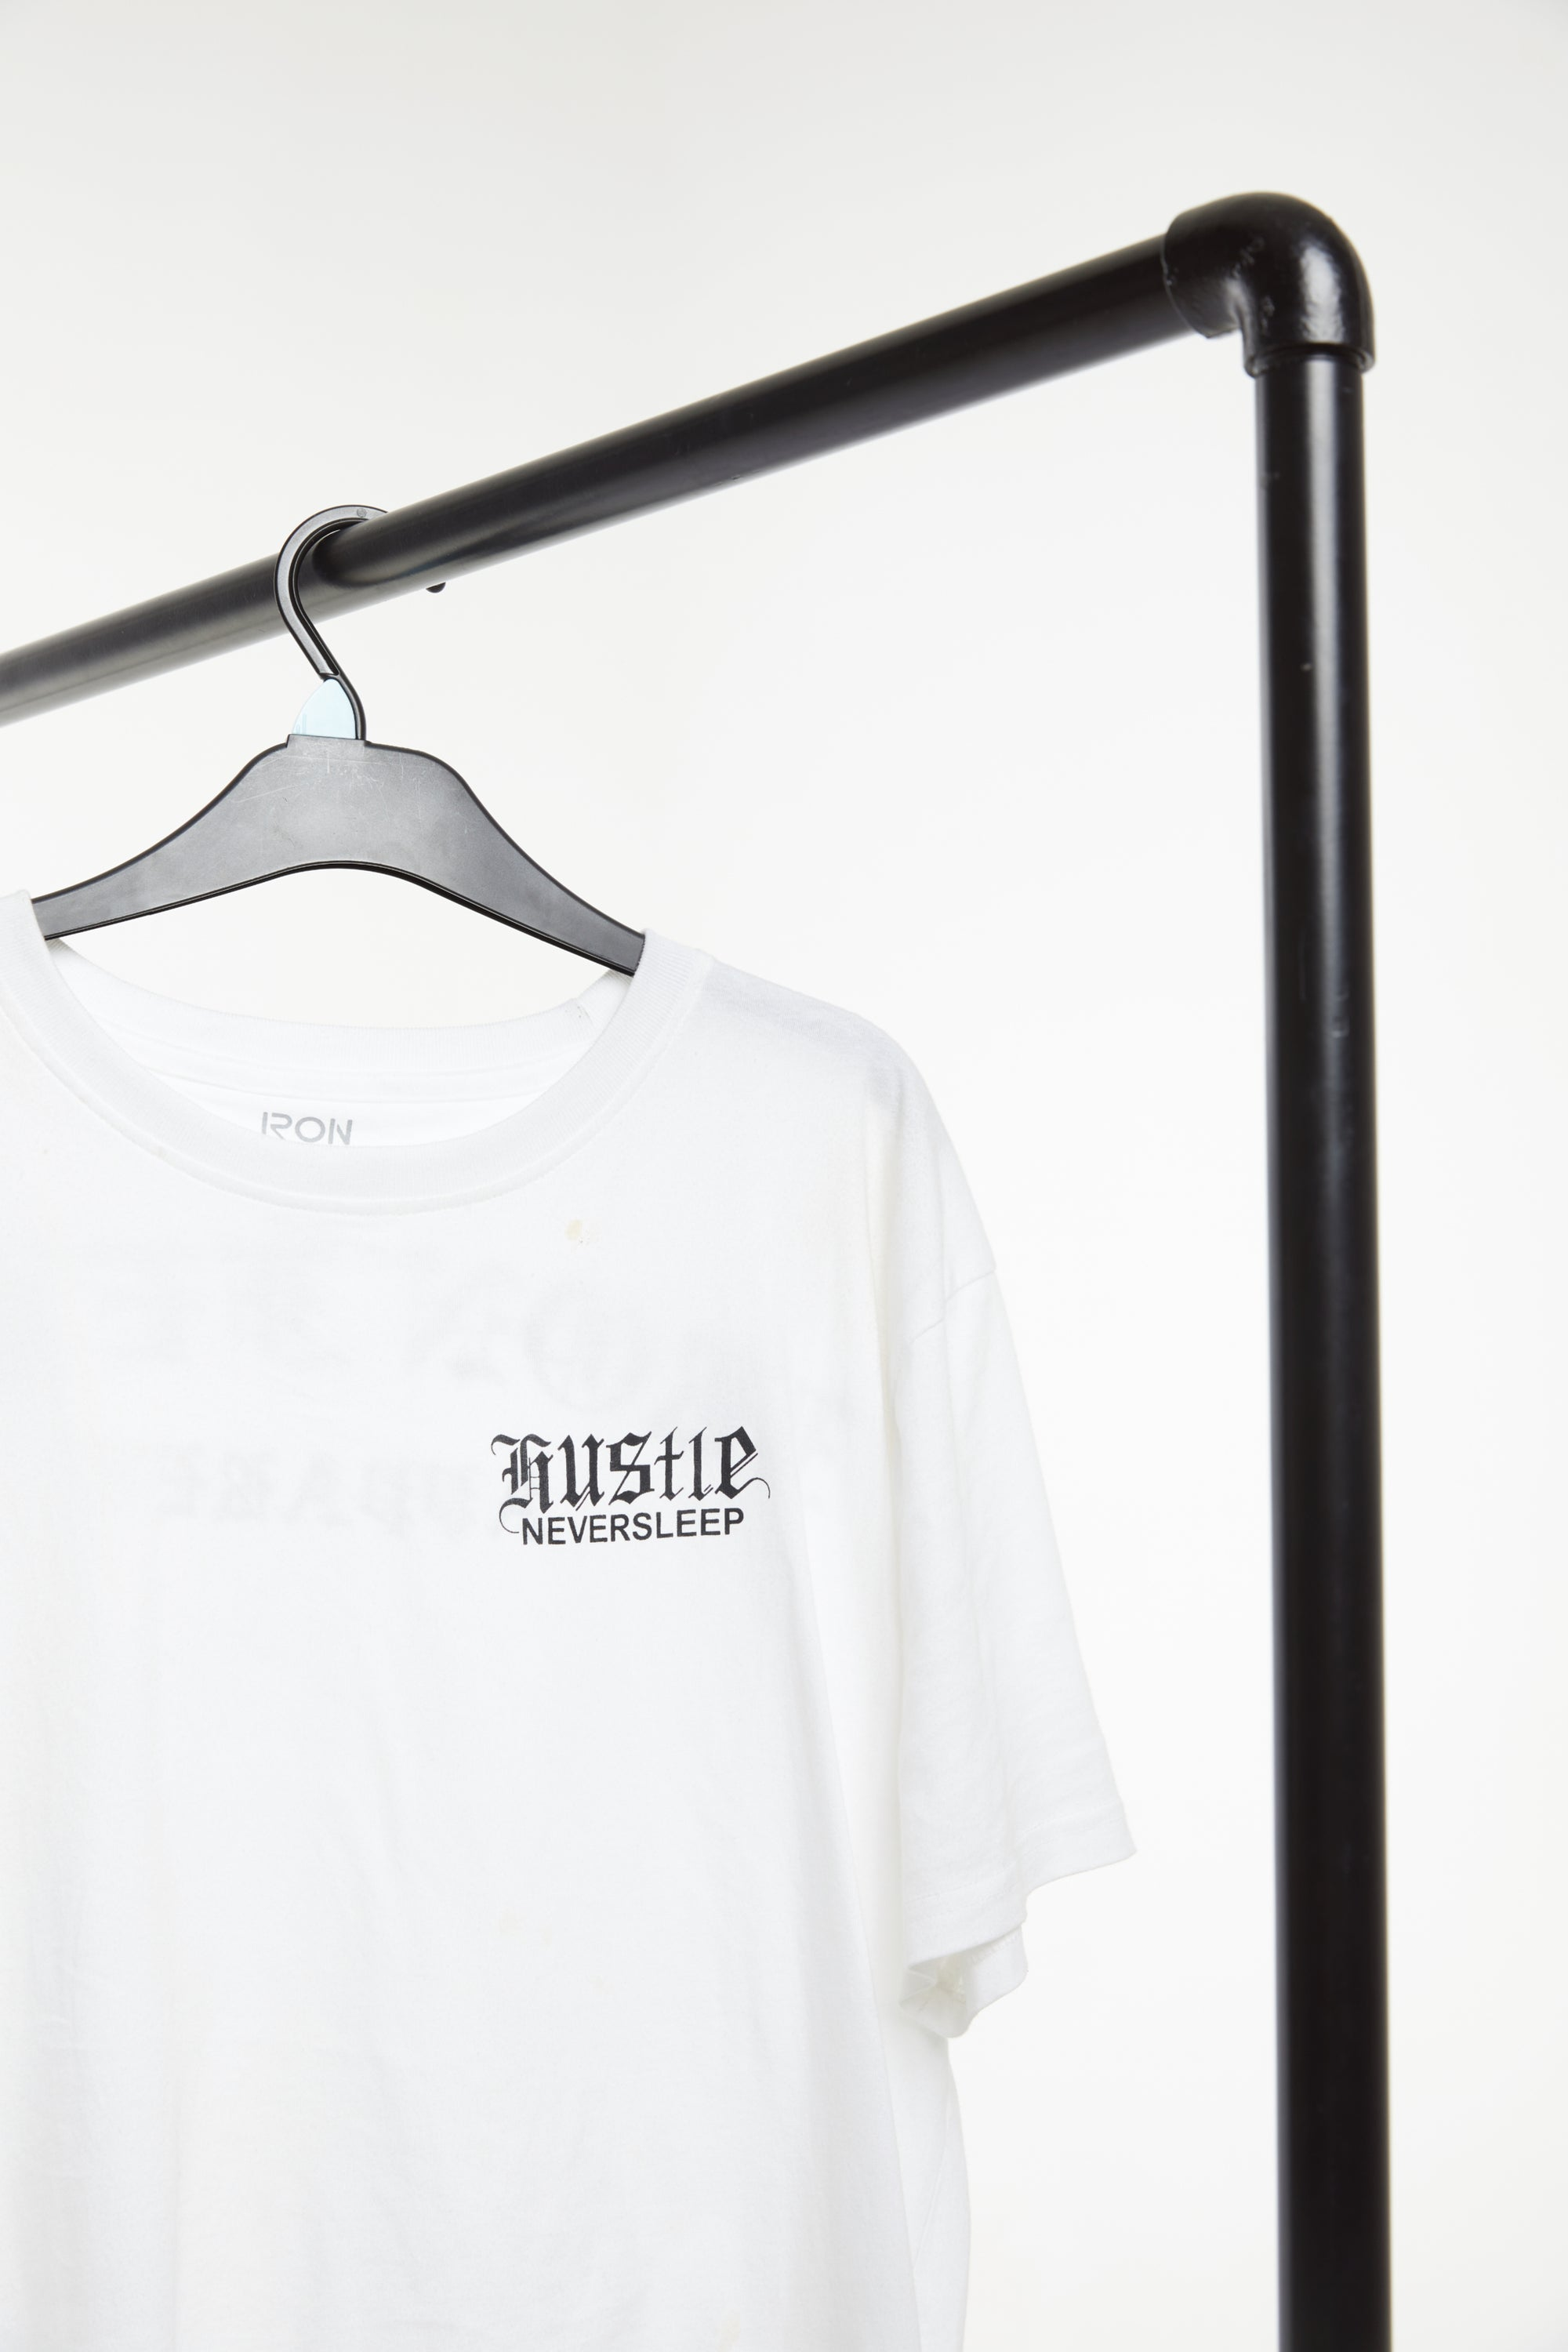 HUSTLE NEVER SLEEP - White / Black